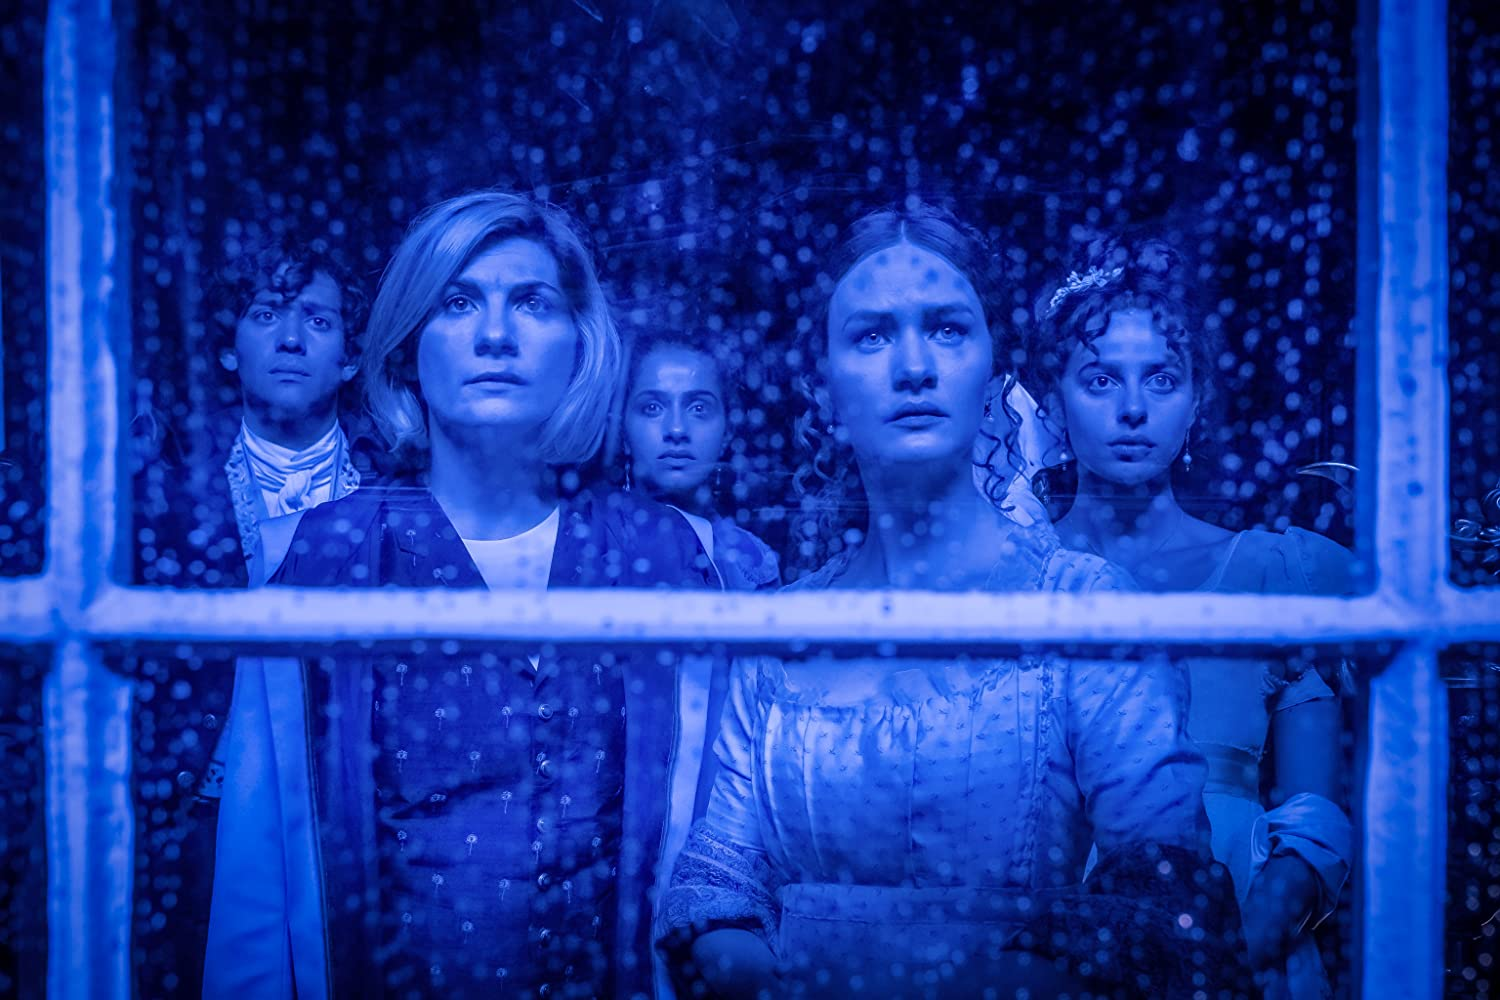 Nadia Parkes, Jodie Whittaker, Mandip Gill, and Lili Miller in Doctor Who (2005)